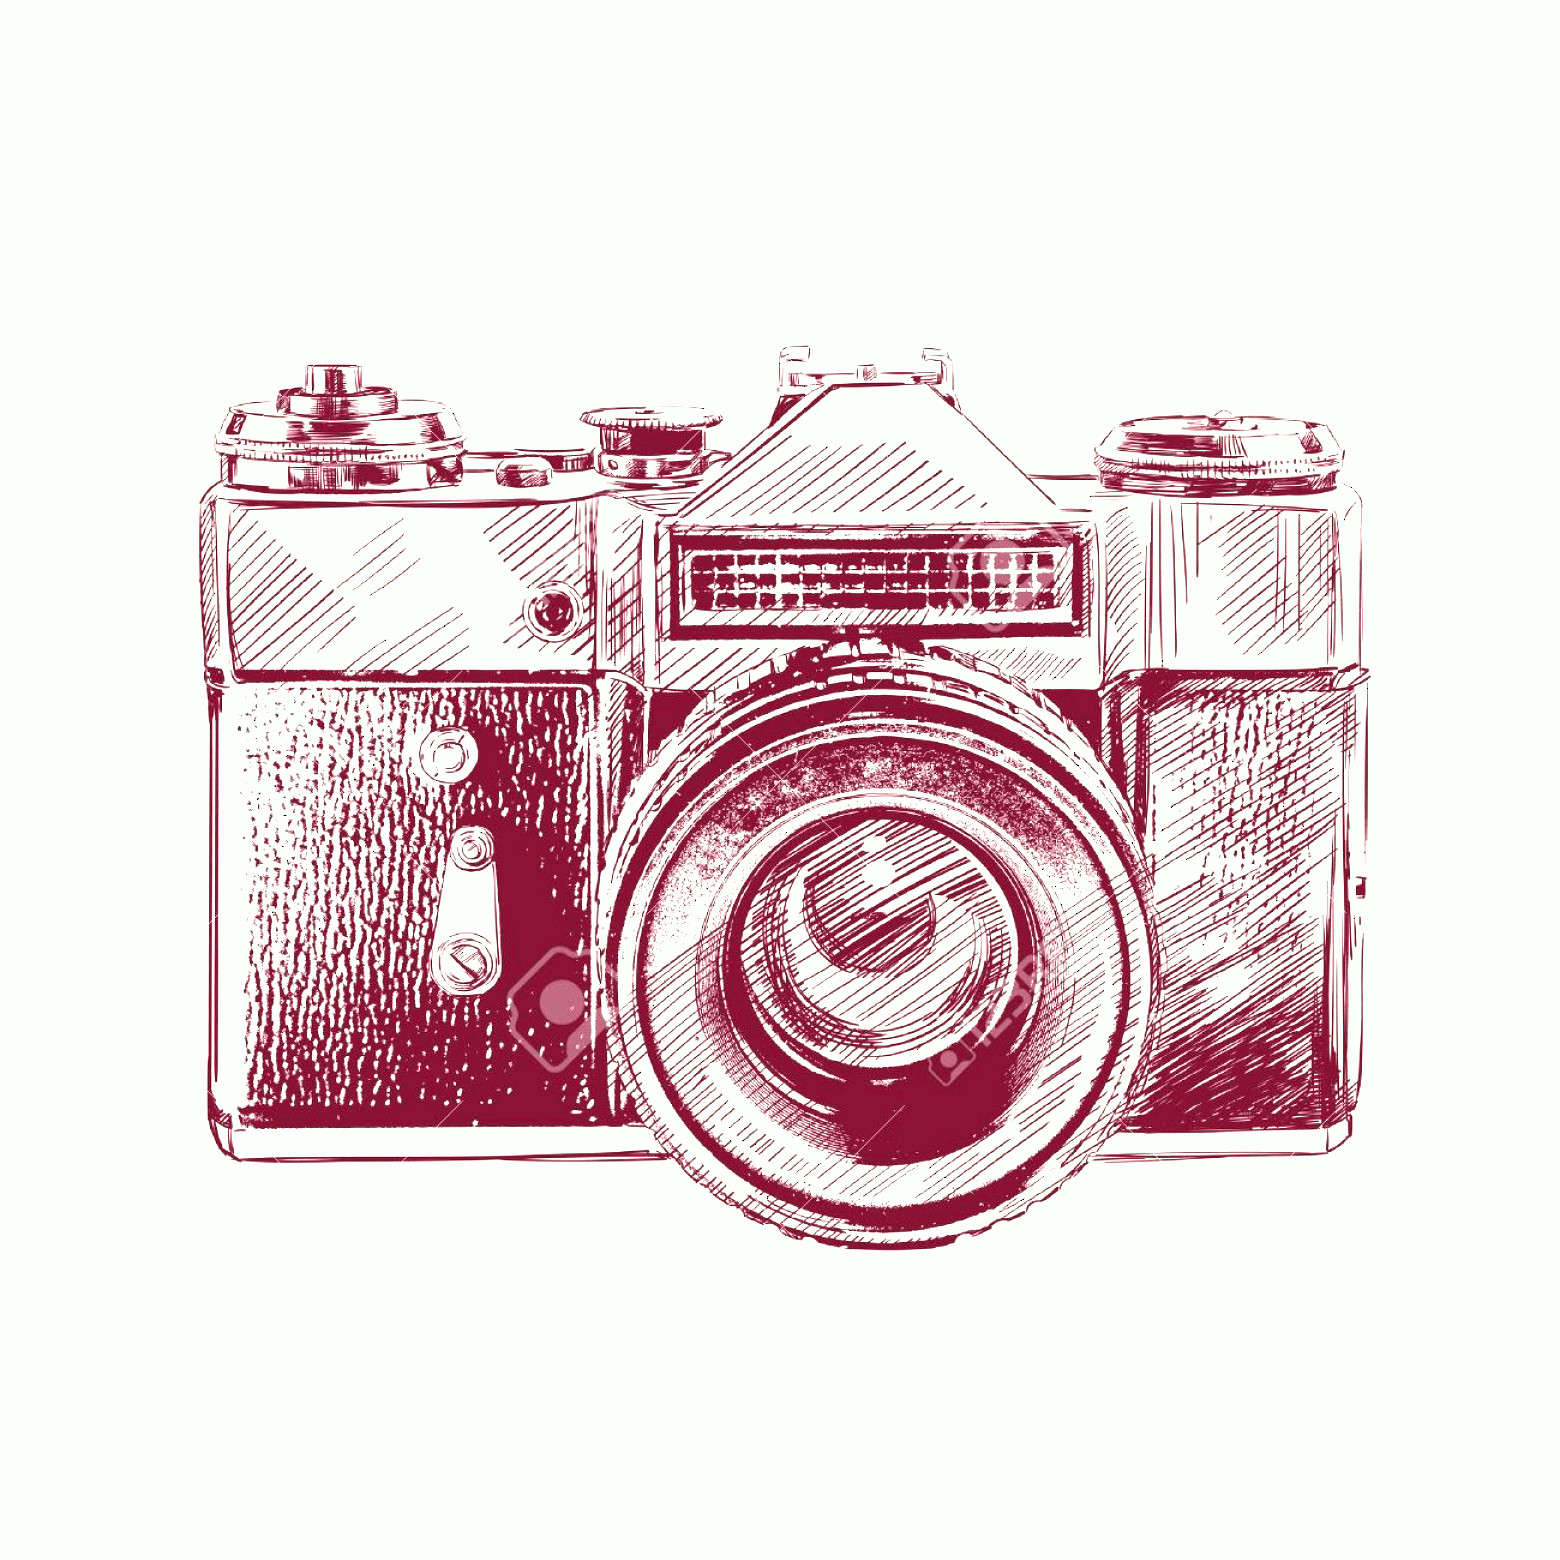 Classic Camera Vector: Photovintage Old Photo Camera Vector Llustration